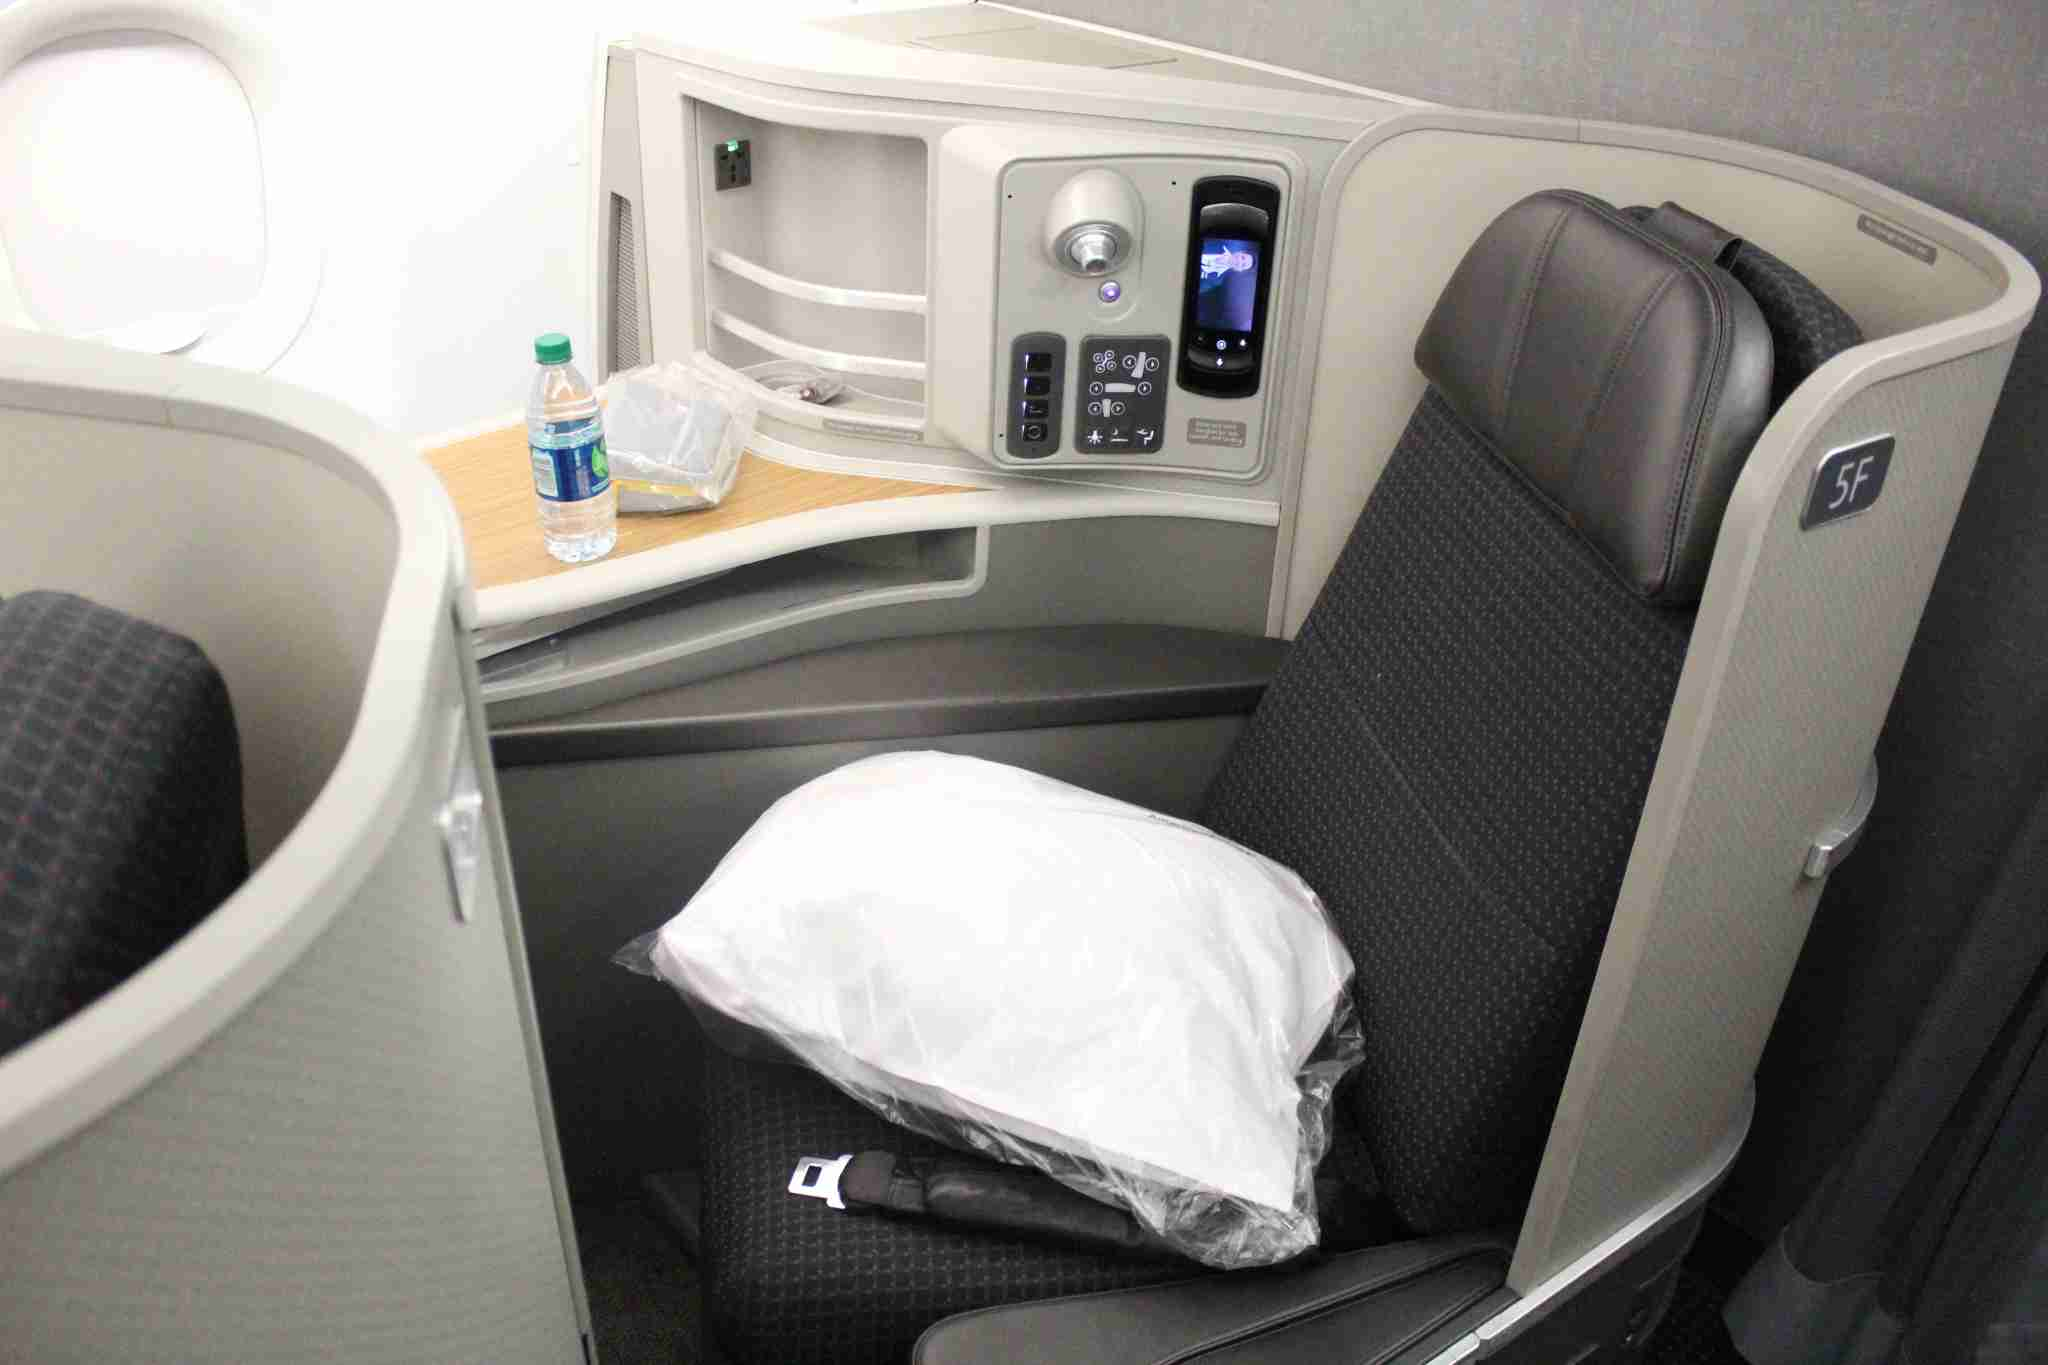 American Airlines Airbus A321T First Class seat. (Image by Max Prosperi/The Points Guy)